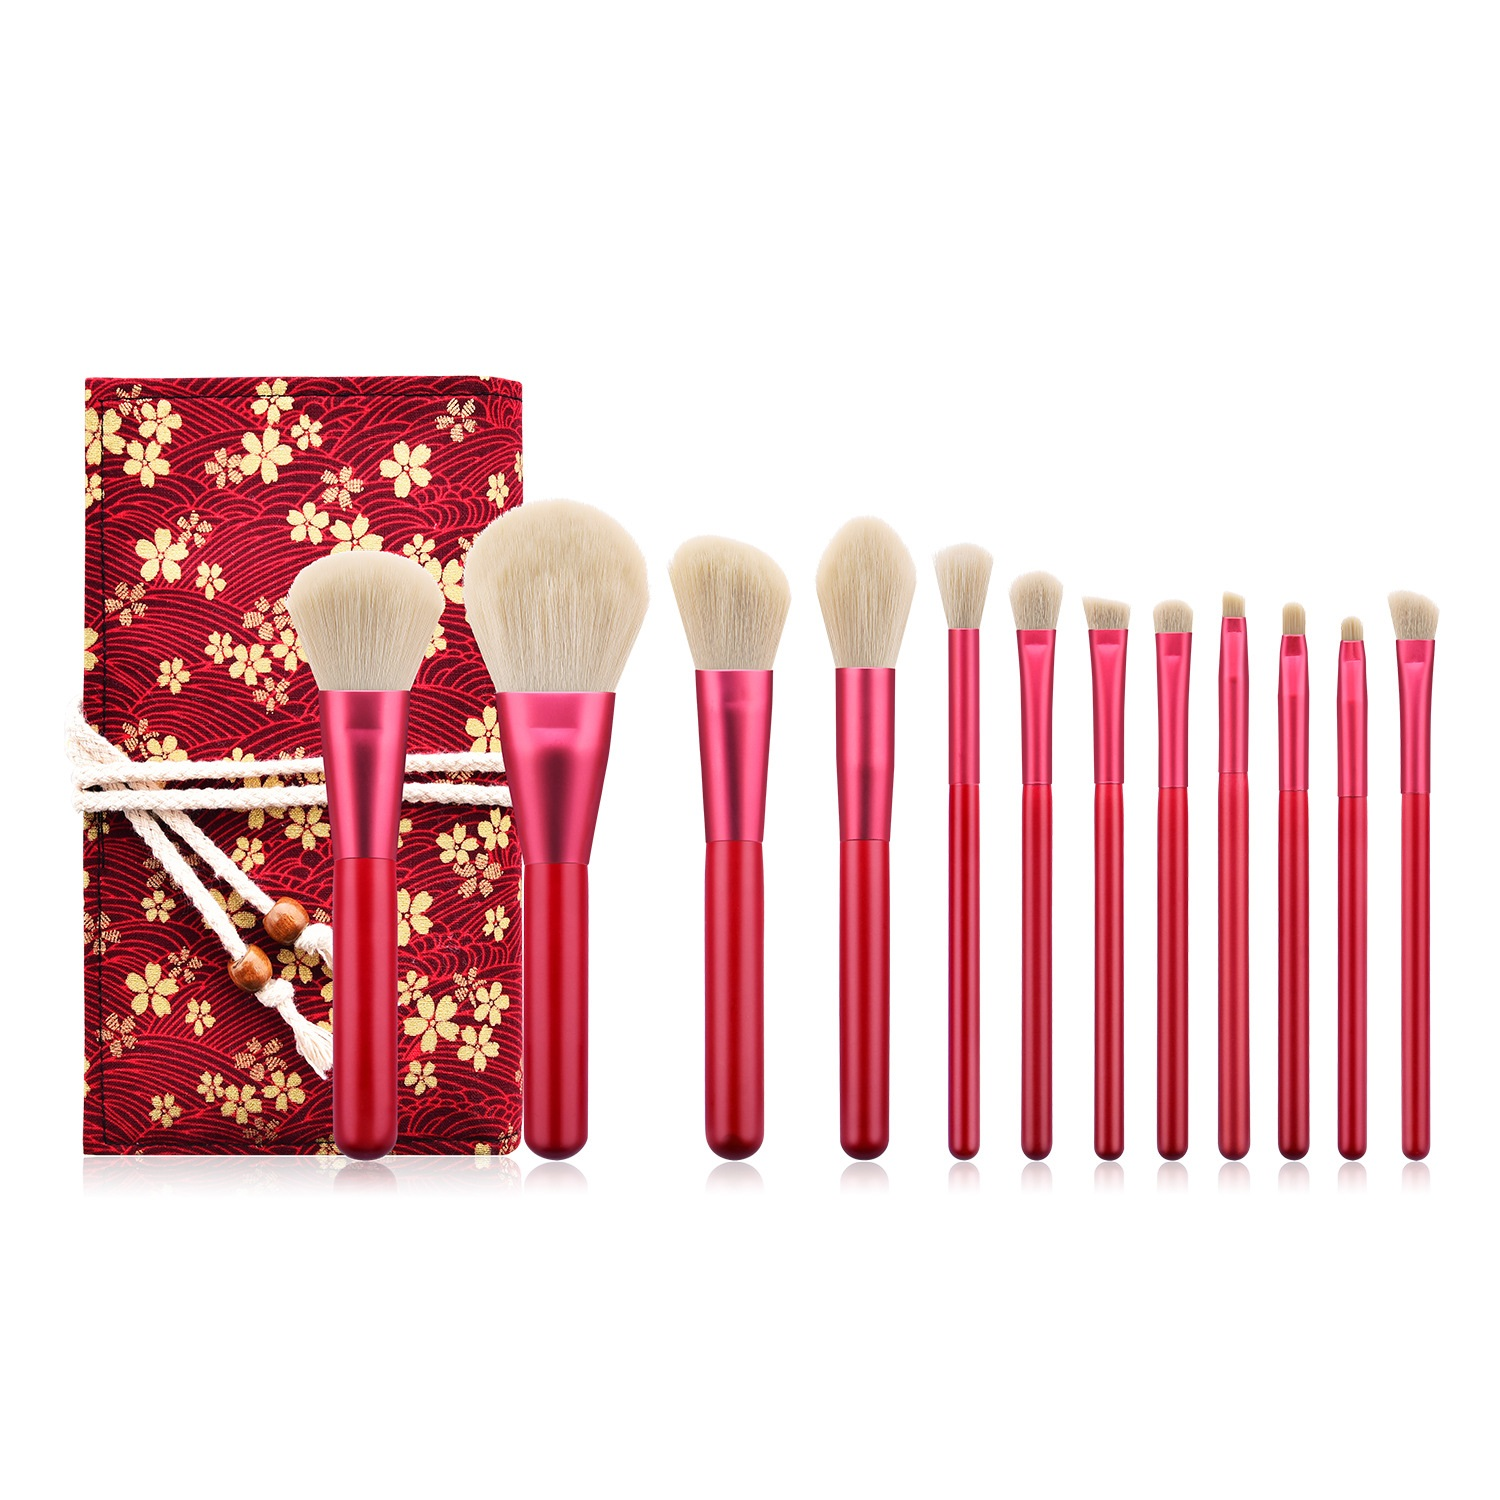 12pcs <strong>Makeup</strong> Wood Handle <strong>Brush</strong> Set With <strong>High</strong> <strong>Quality</strong> Professional Bag <strong>Makeup</strong> <strong>Brush</strong> With Bag